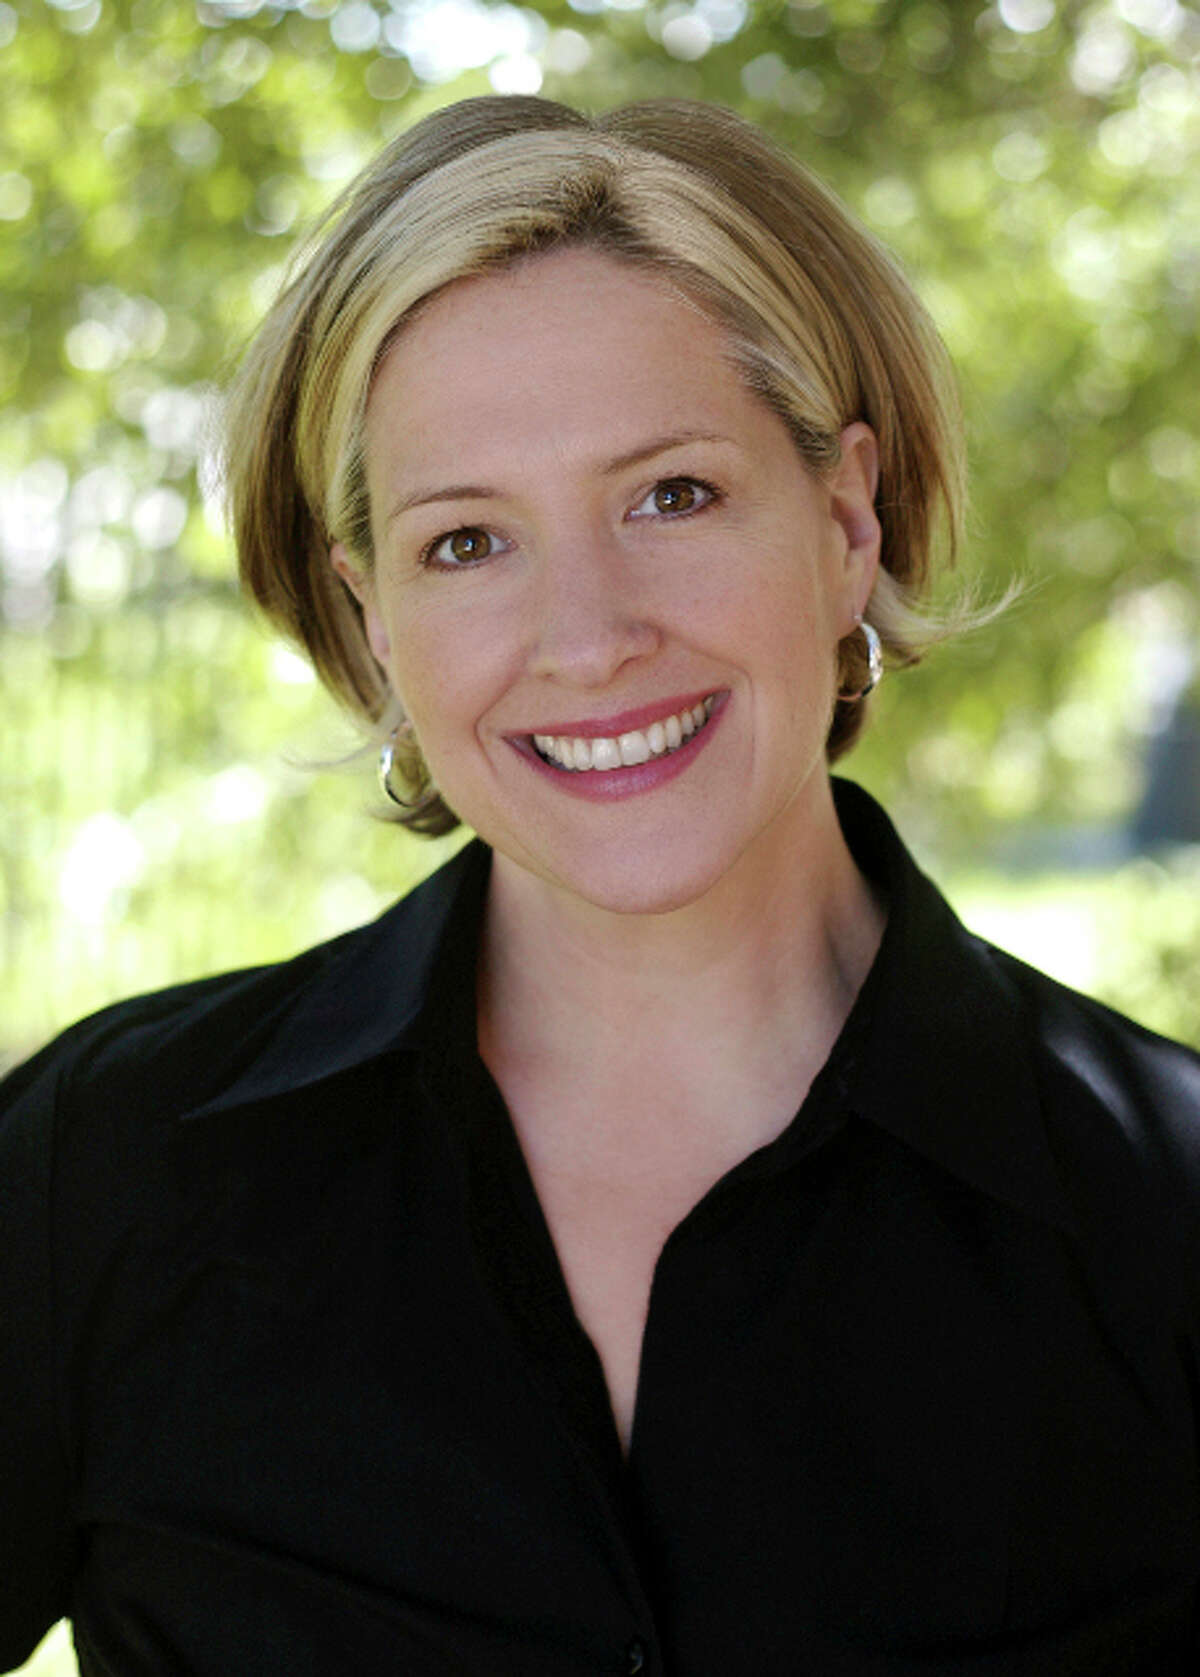 Dr. Brené Brown is a researcher, teacher and nationally renowned lecturer. She studies empathy, vulnerability and shame at the University of Houston Graduate College of Social Work.